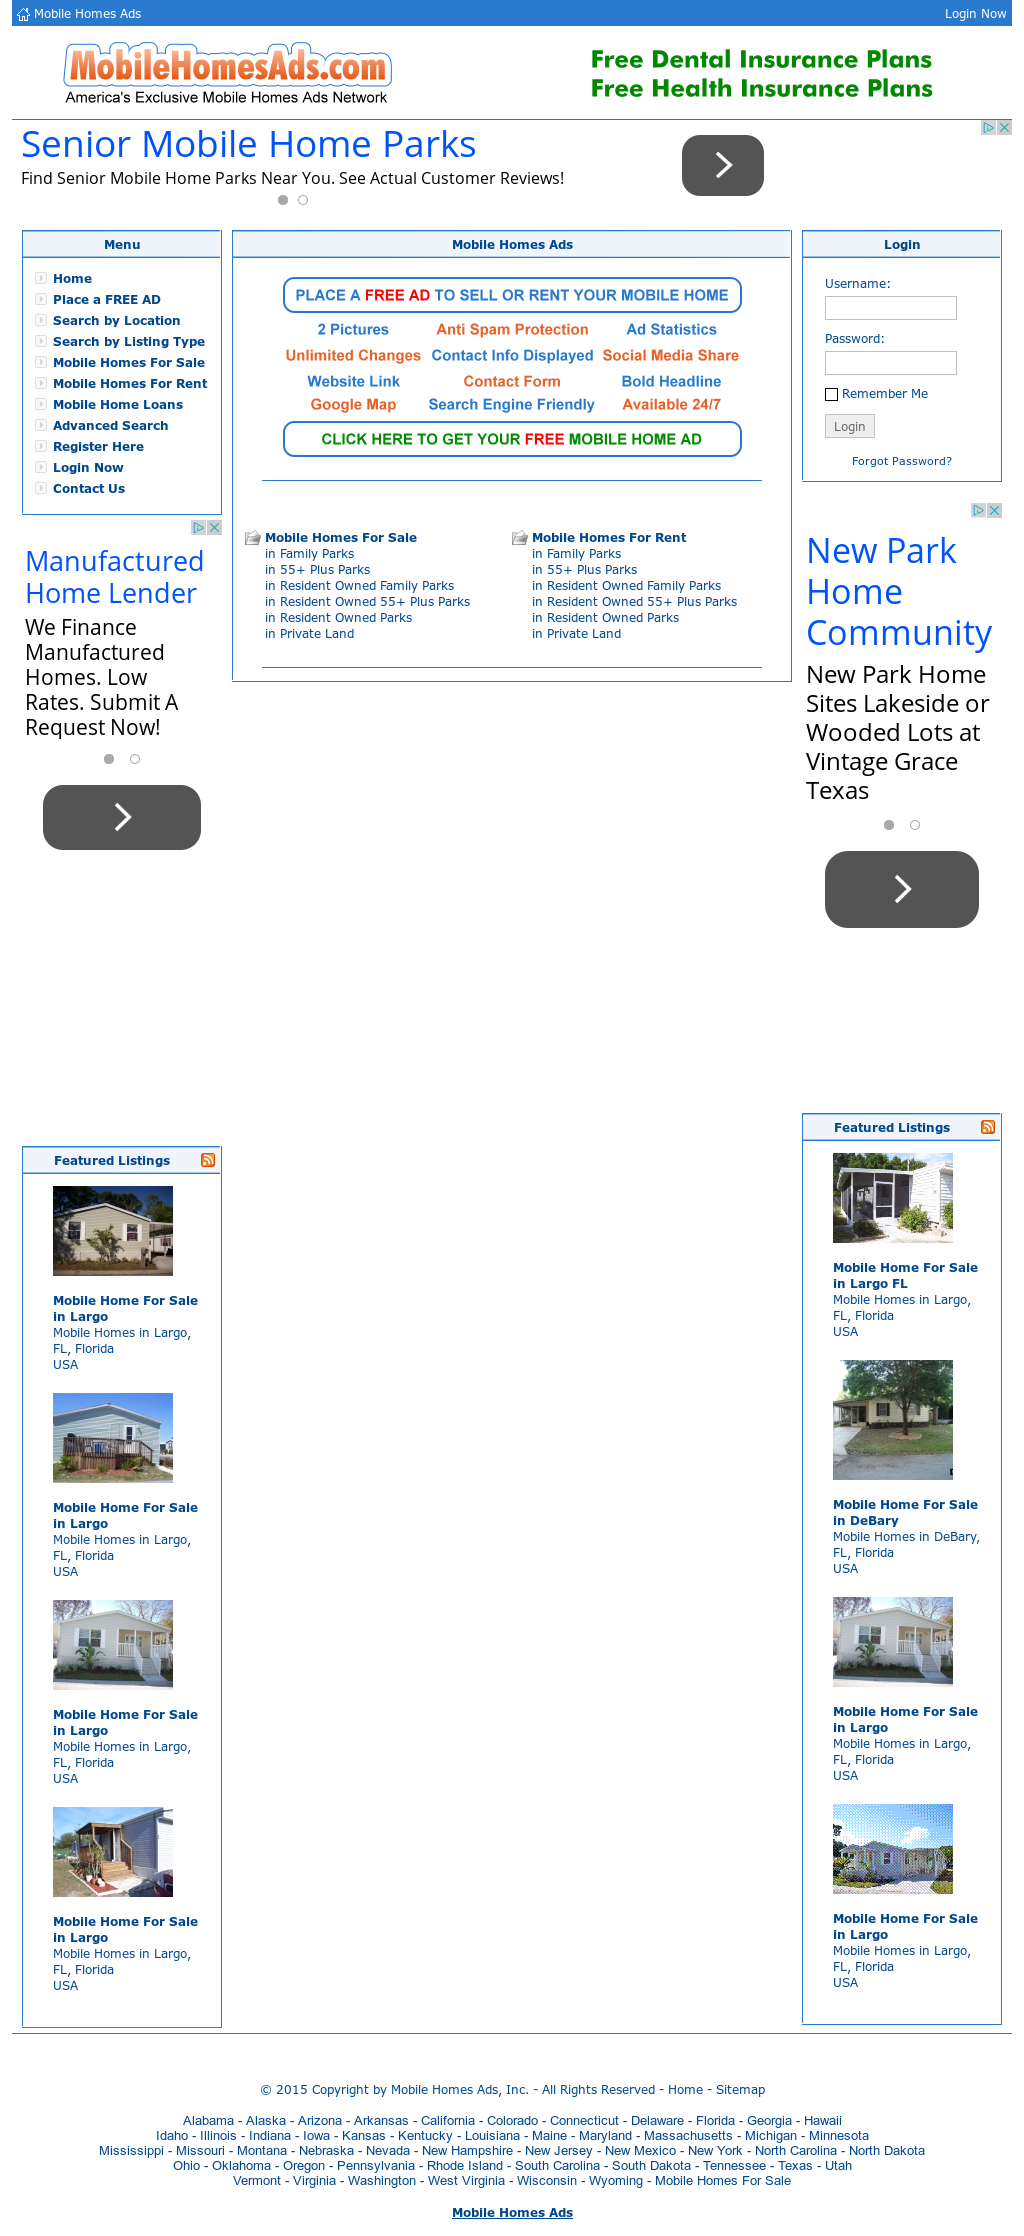 Mobile Homes Ads Competitors, Revenue and Employees - Owler Company